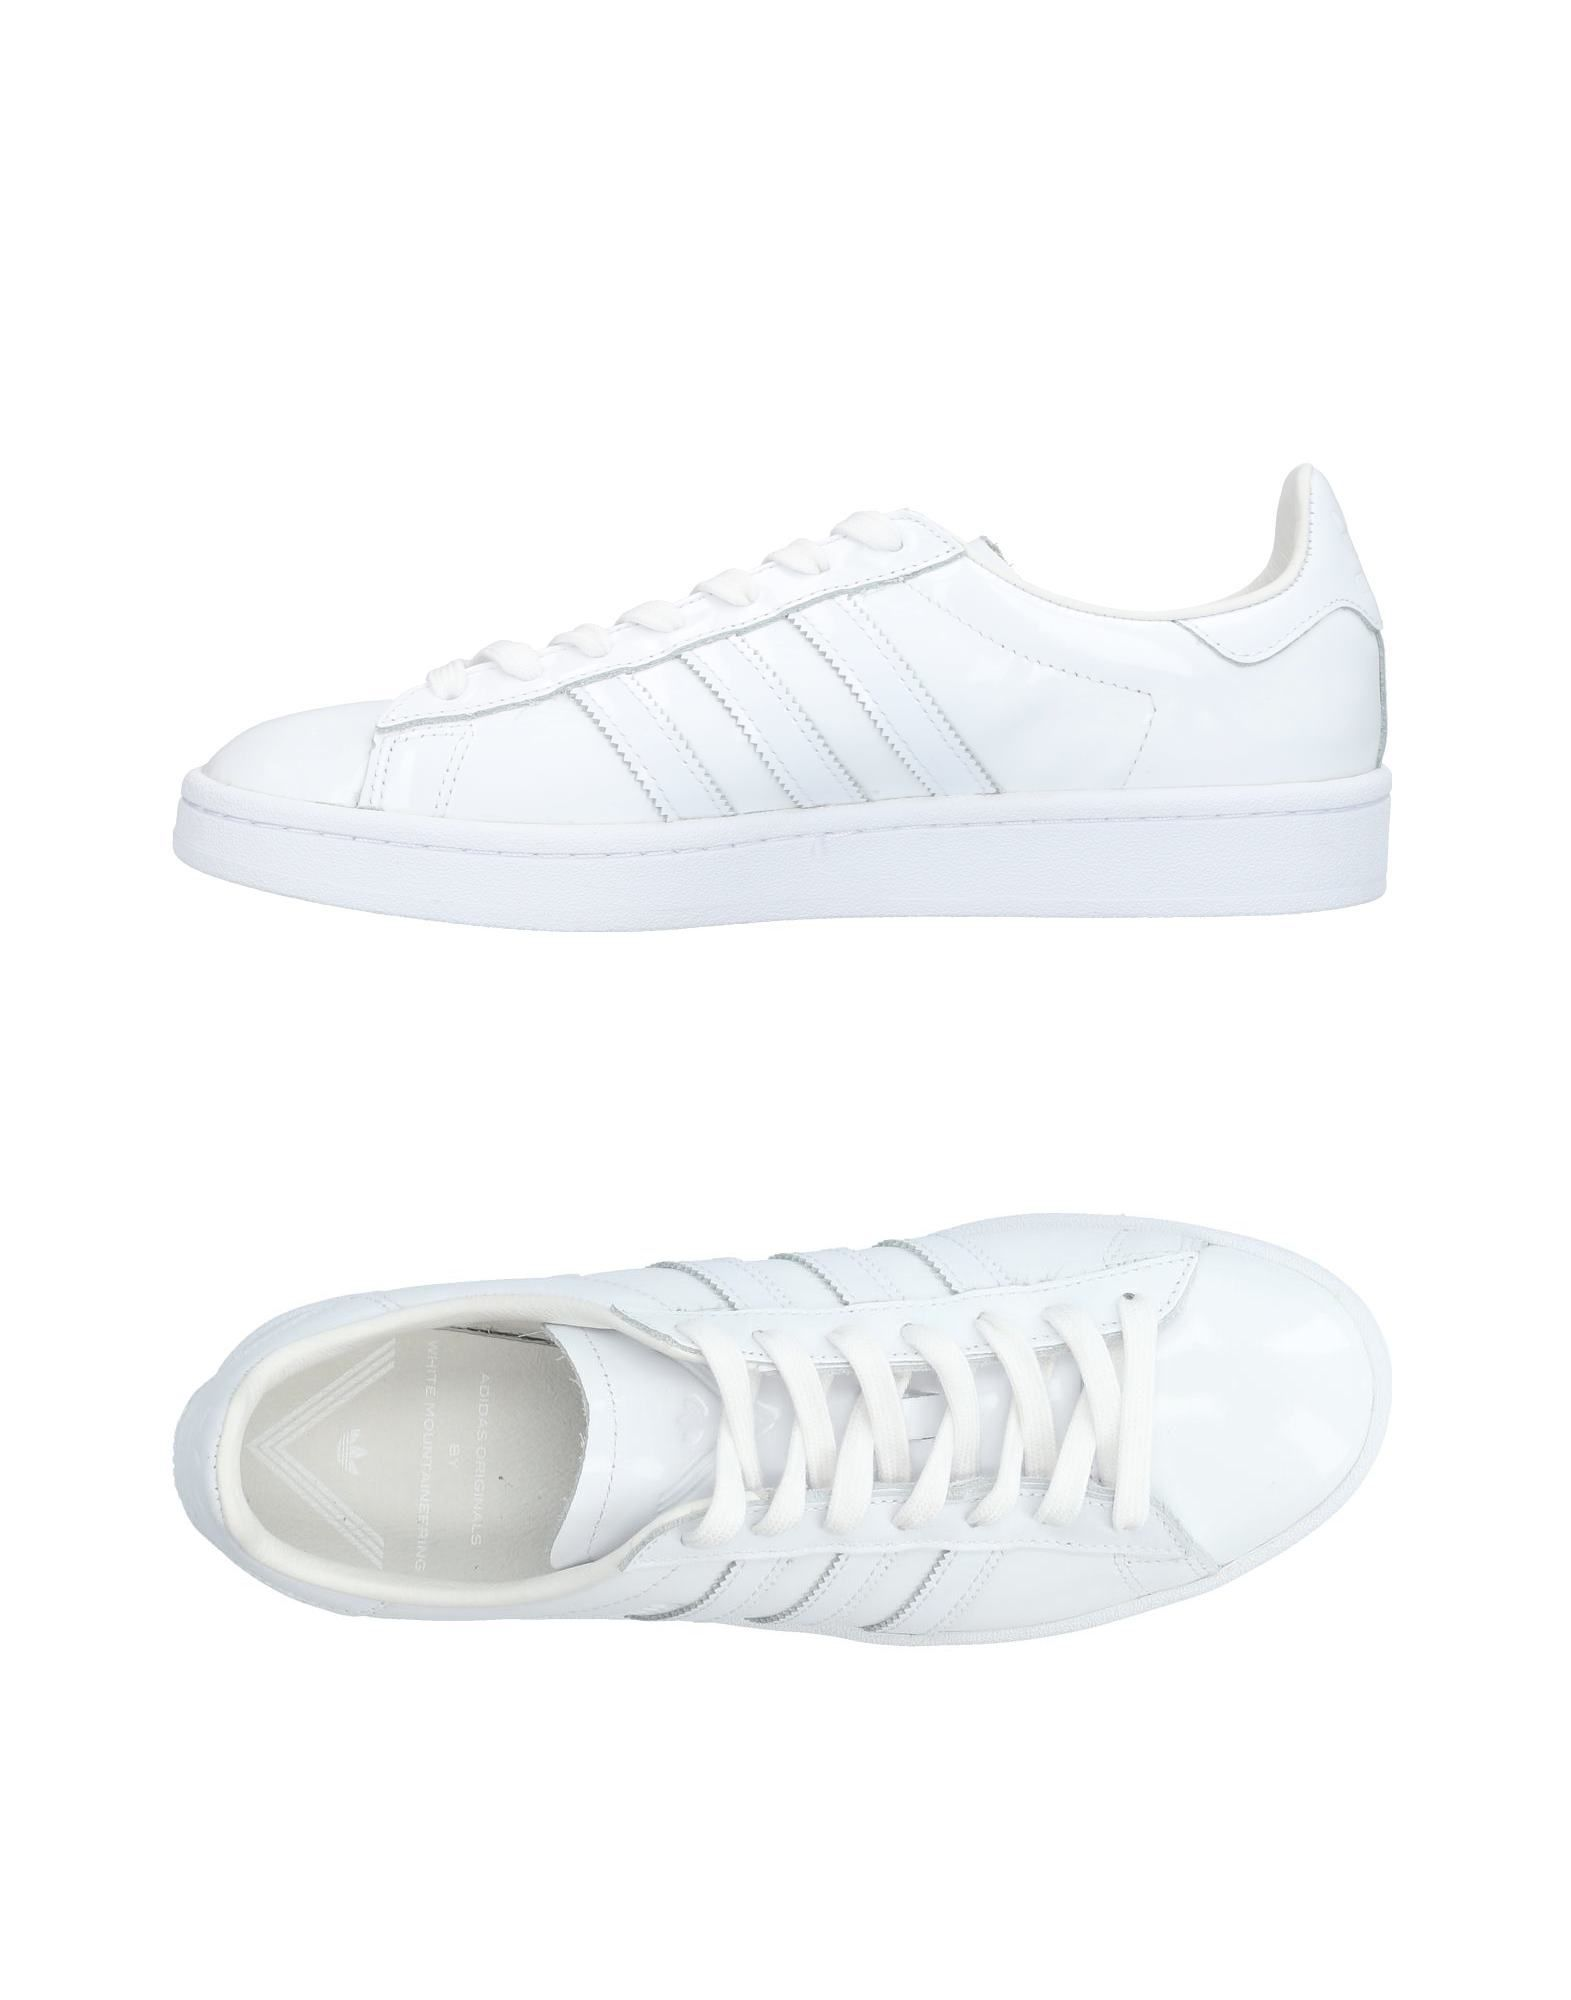 Sneakers Adidas Originals Uomo - 11455842PT